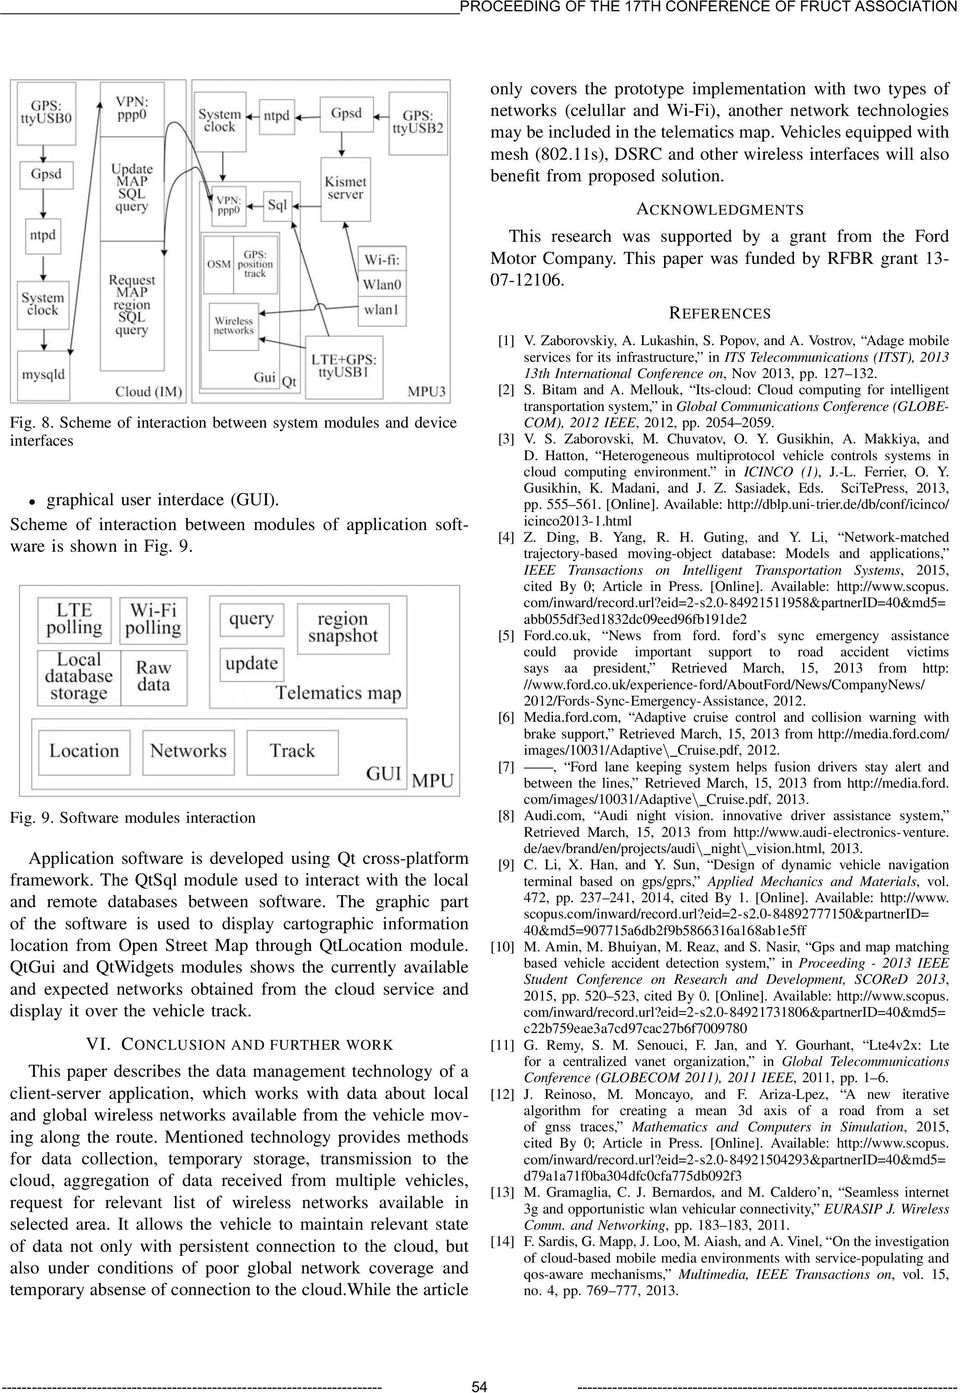 This paper was funded by RFBR grant 13-07-12106. REFERENCES Fig. 8. Scheme of interaction between system modules and device interfaces graphical user interdace (GUI).